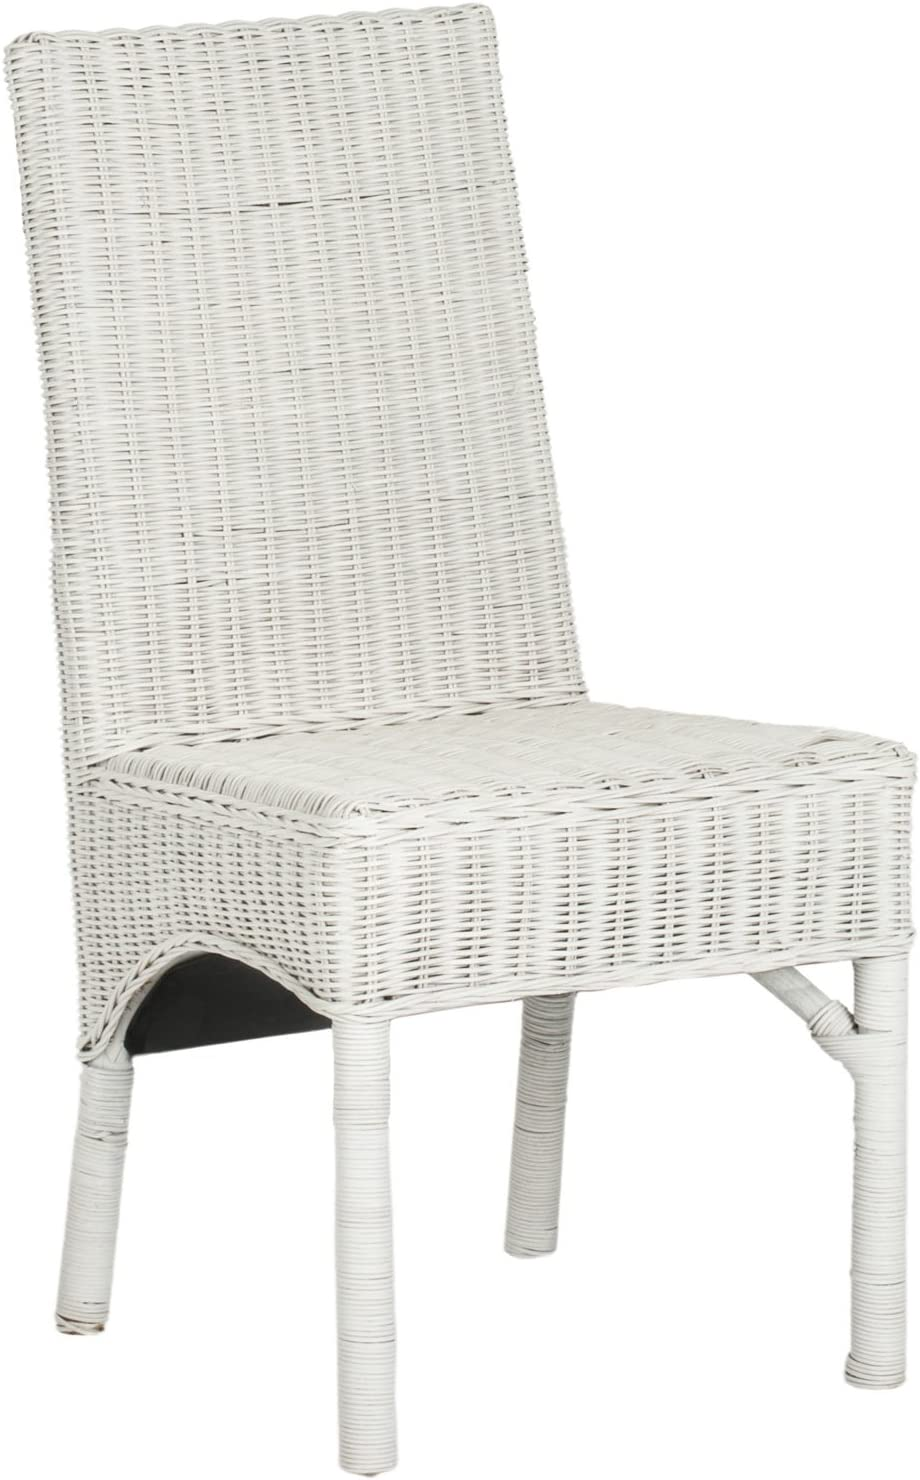 Safavieh Home Collection Sommerset White Dining Chair Set of 2